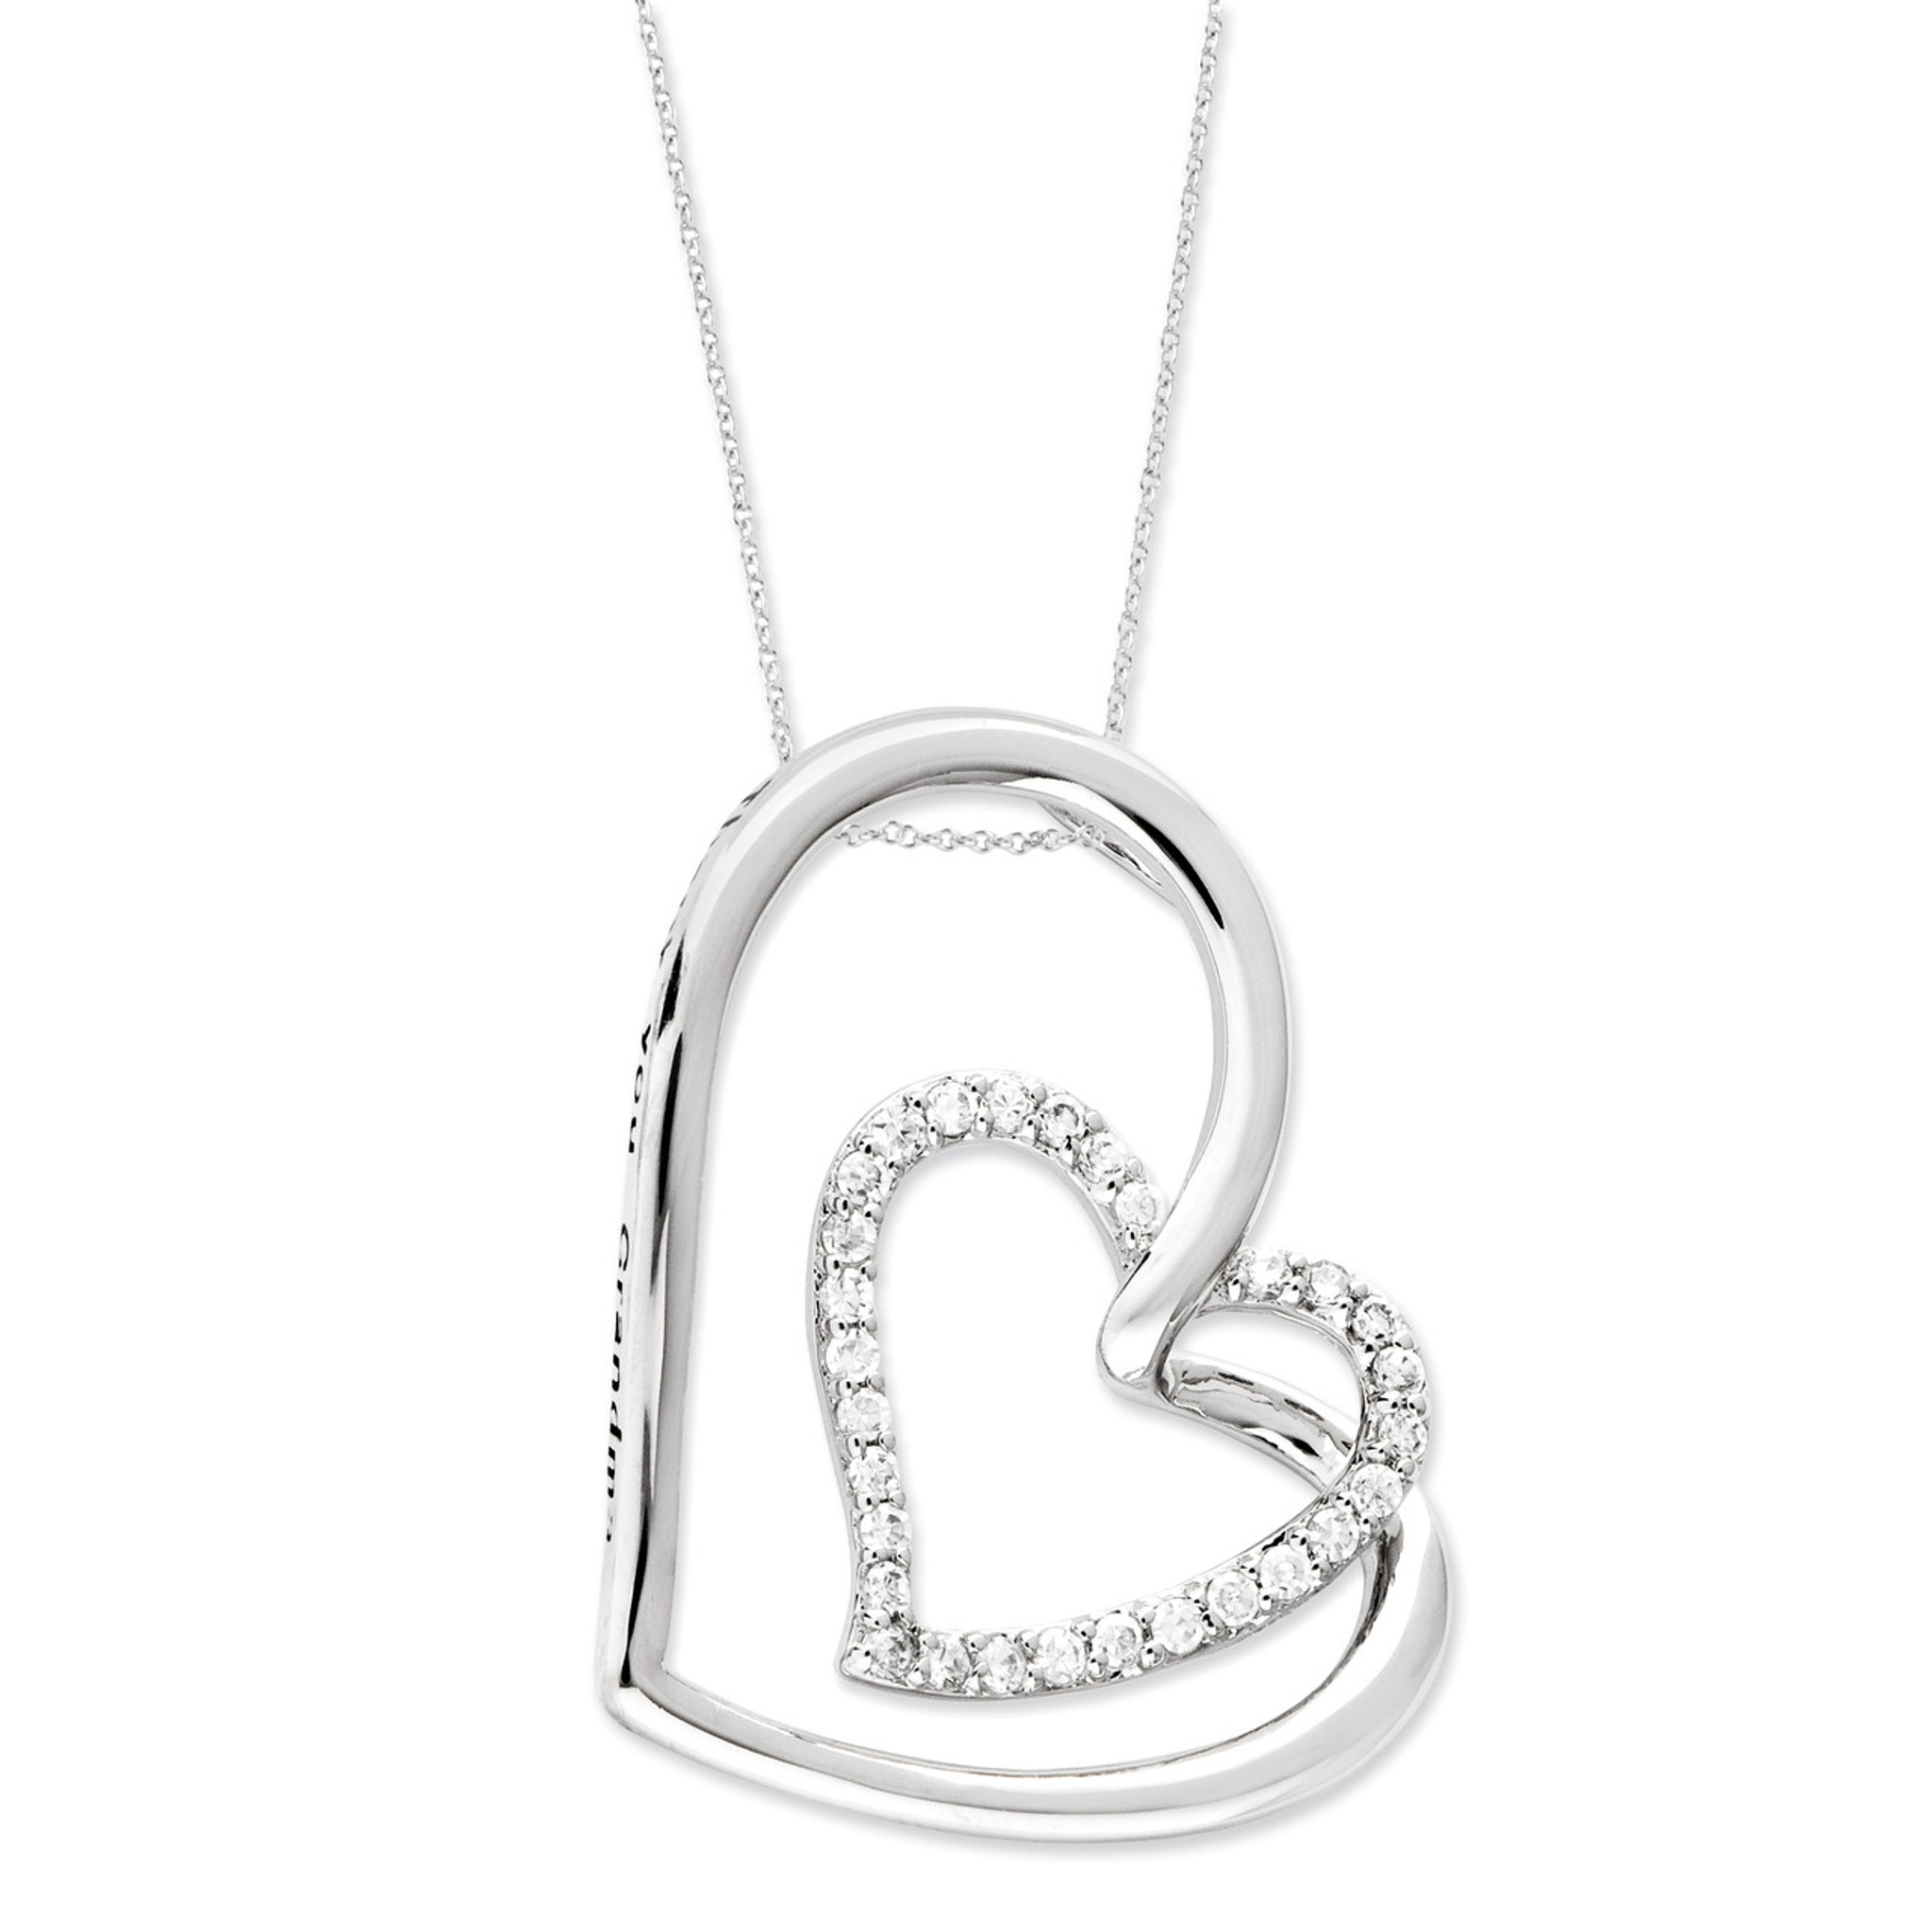 Necklace Sentimental Expressions Sterling Silver Antiqued for You My Love 18in